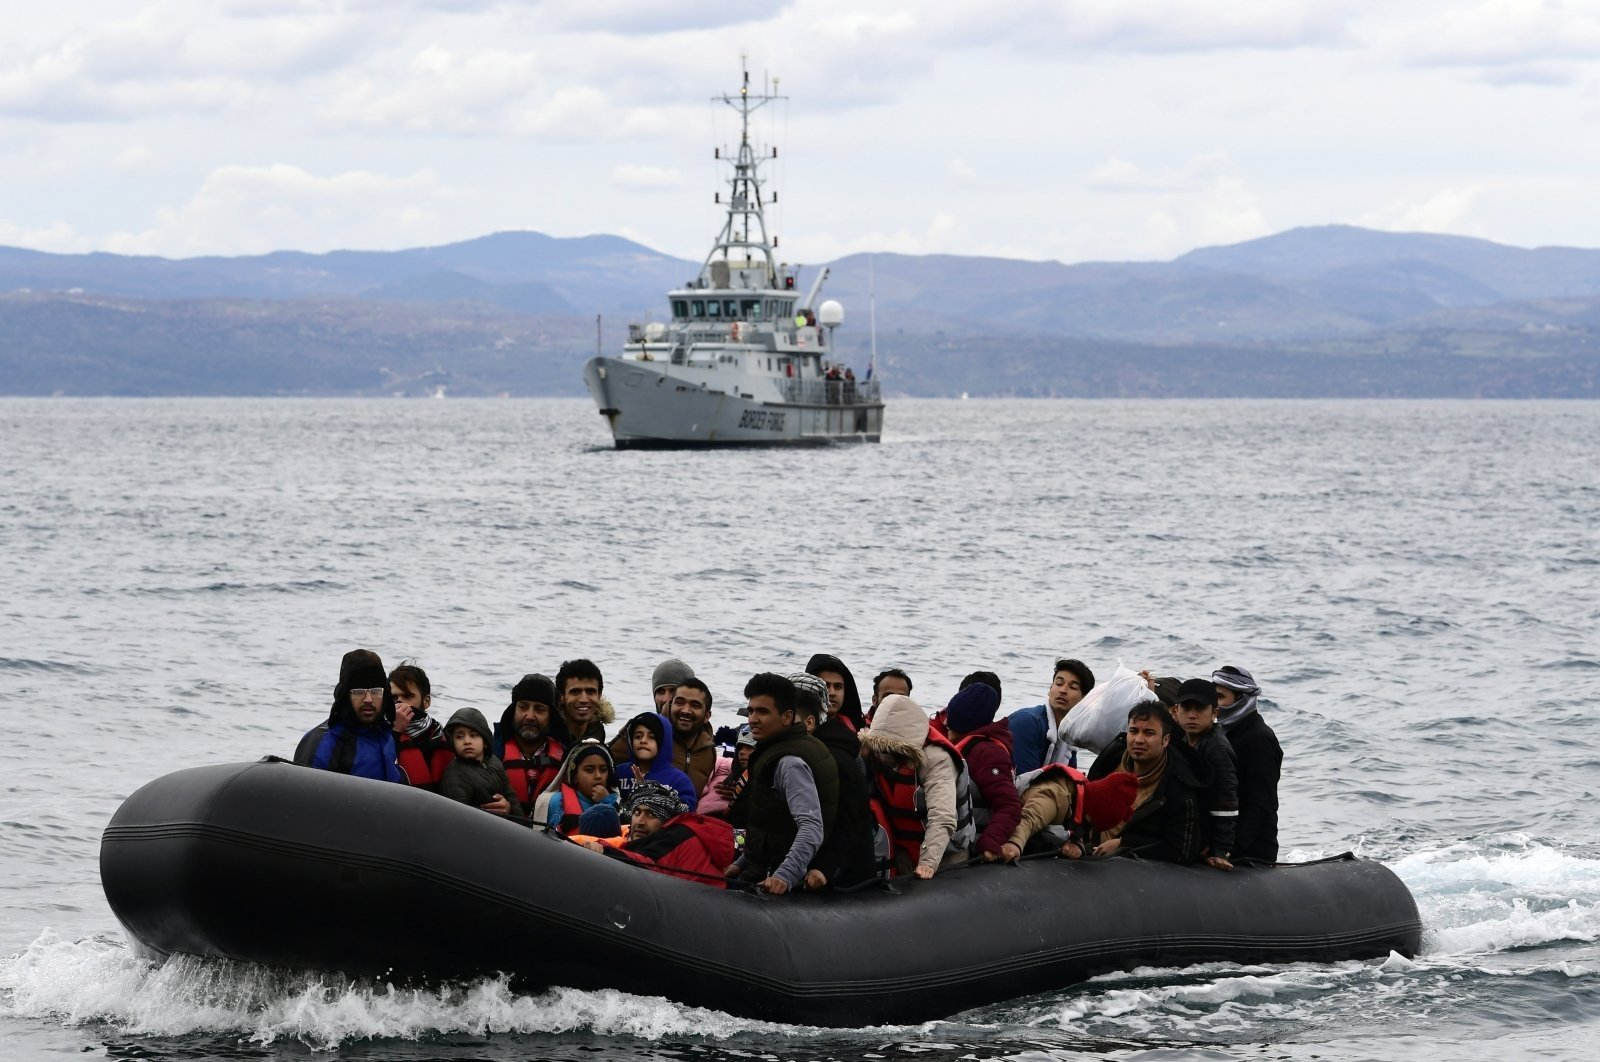 After crossing the Aegean from Turkey, migrants arrive in a dinghy at the village of Skala Sikaminias accompanied by a Frontex vessel, on the Greek island of Lesbos, Feb. 28, 2020. (AP Photo)